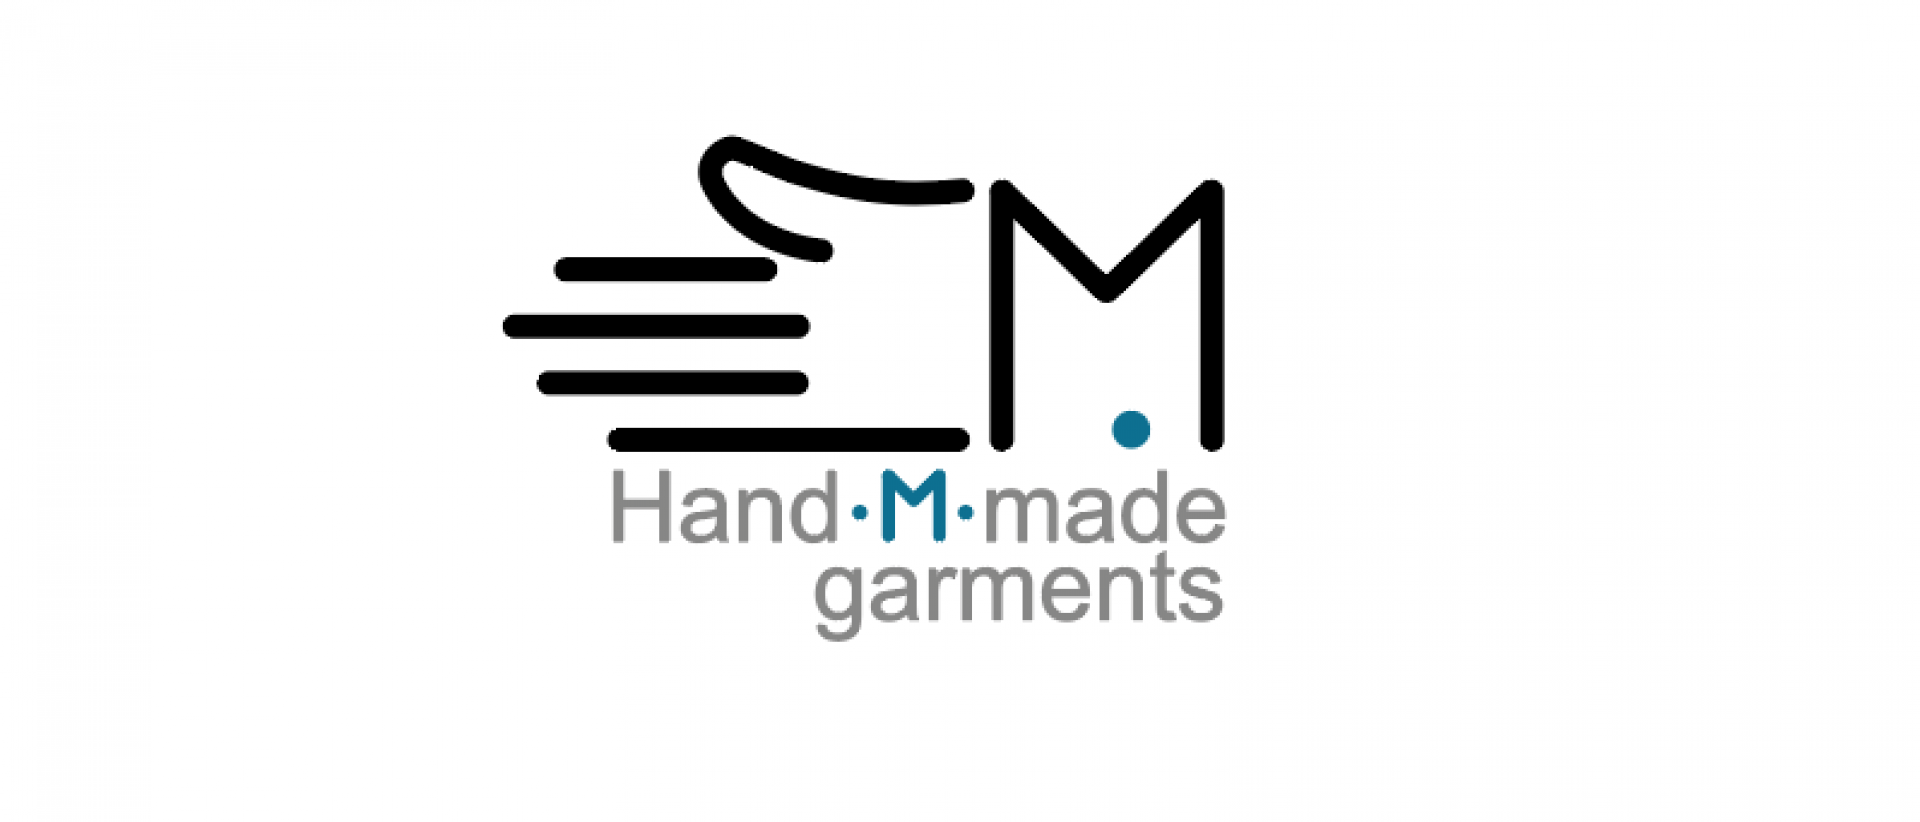 Hand-M-made garments